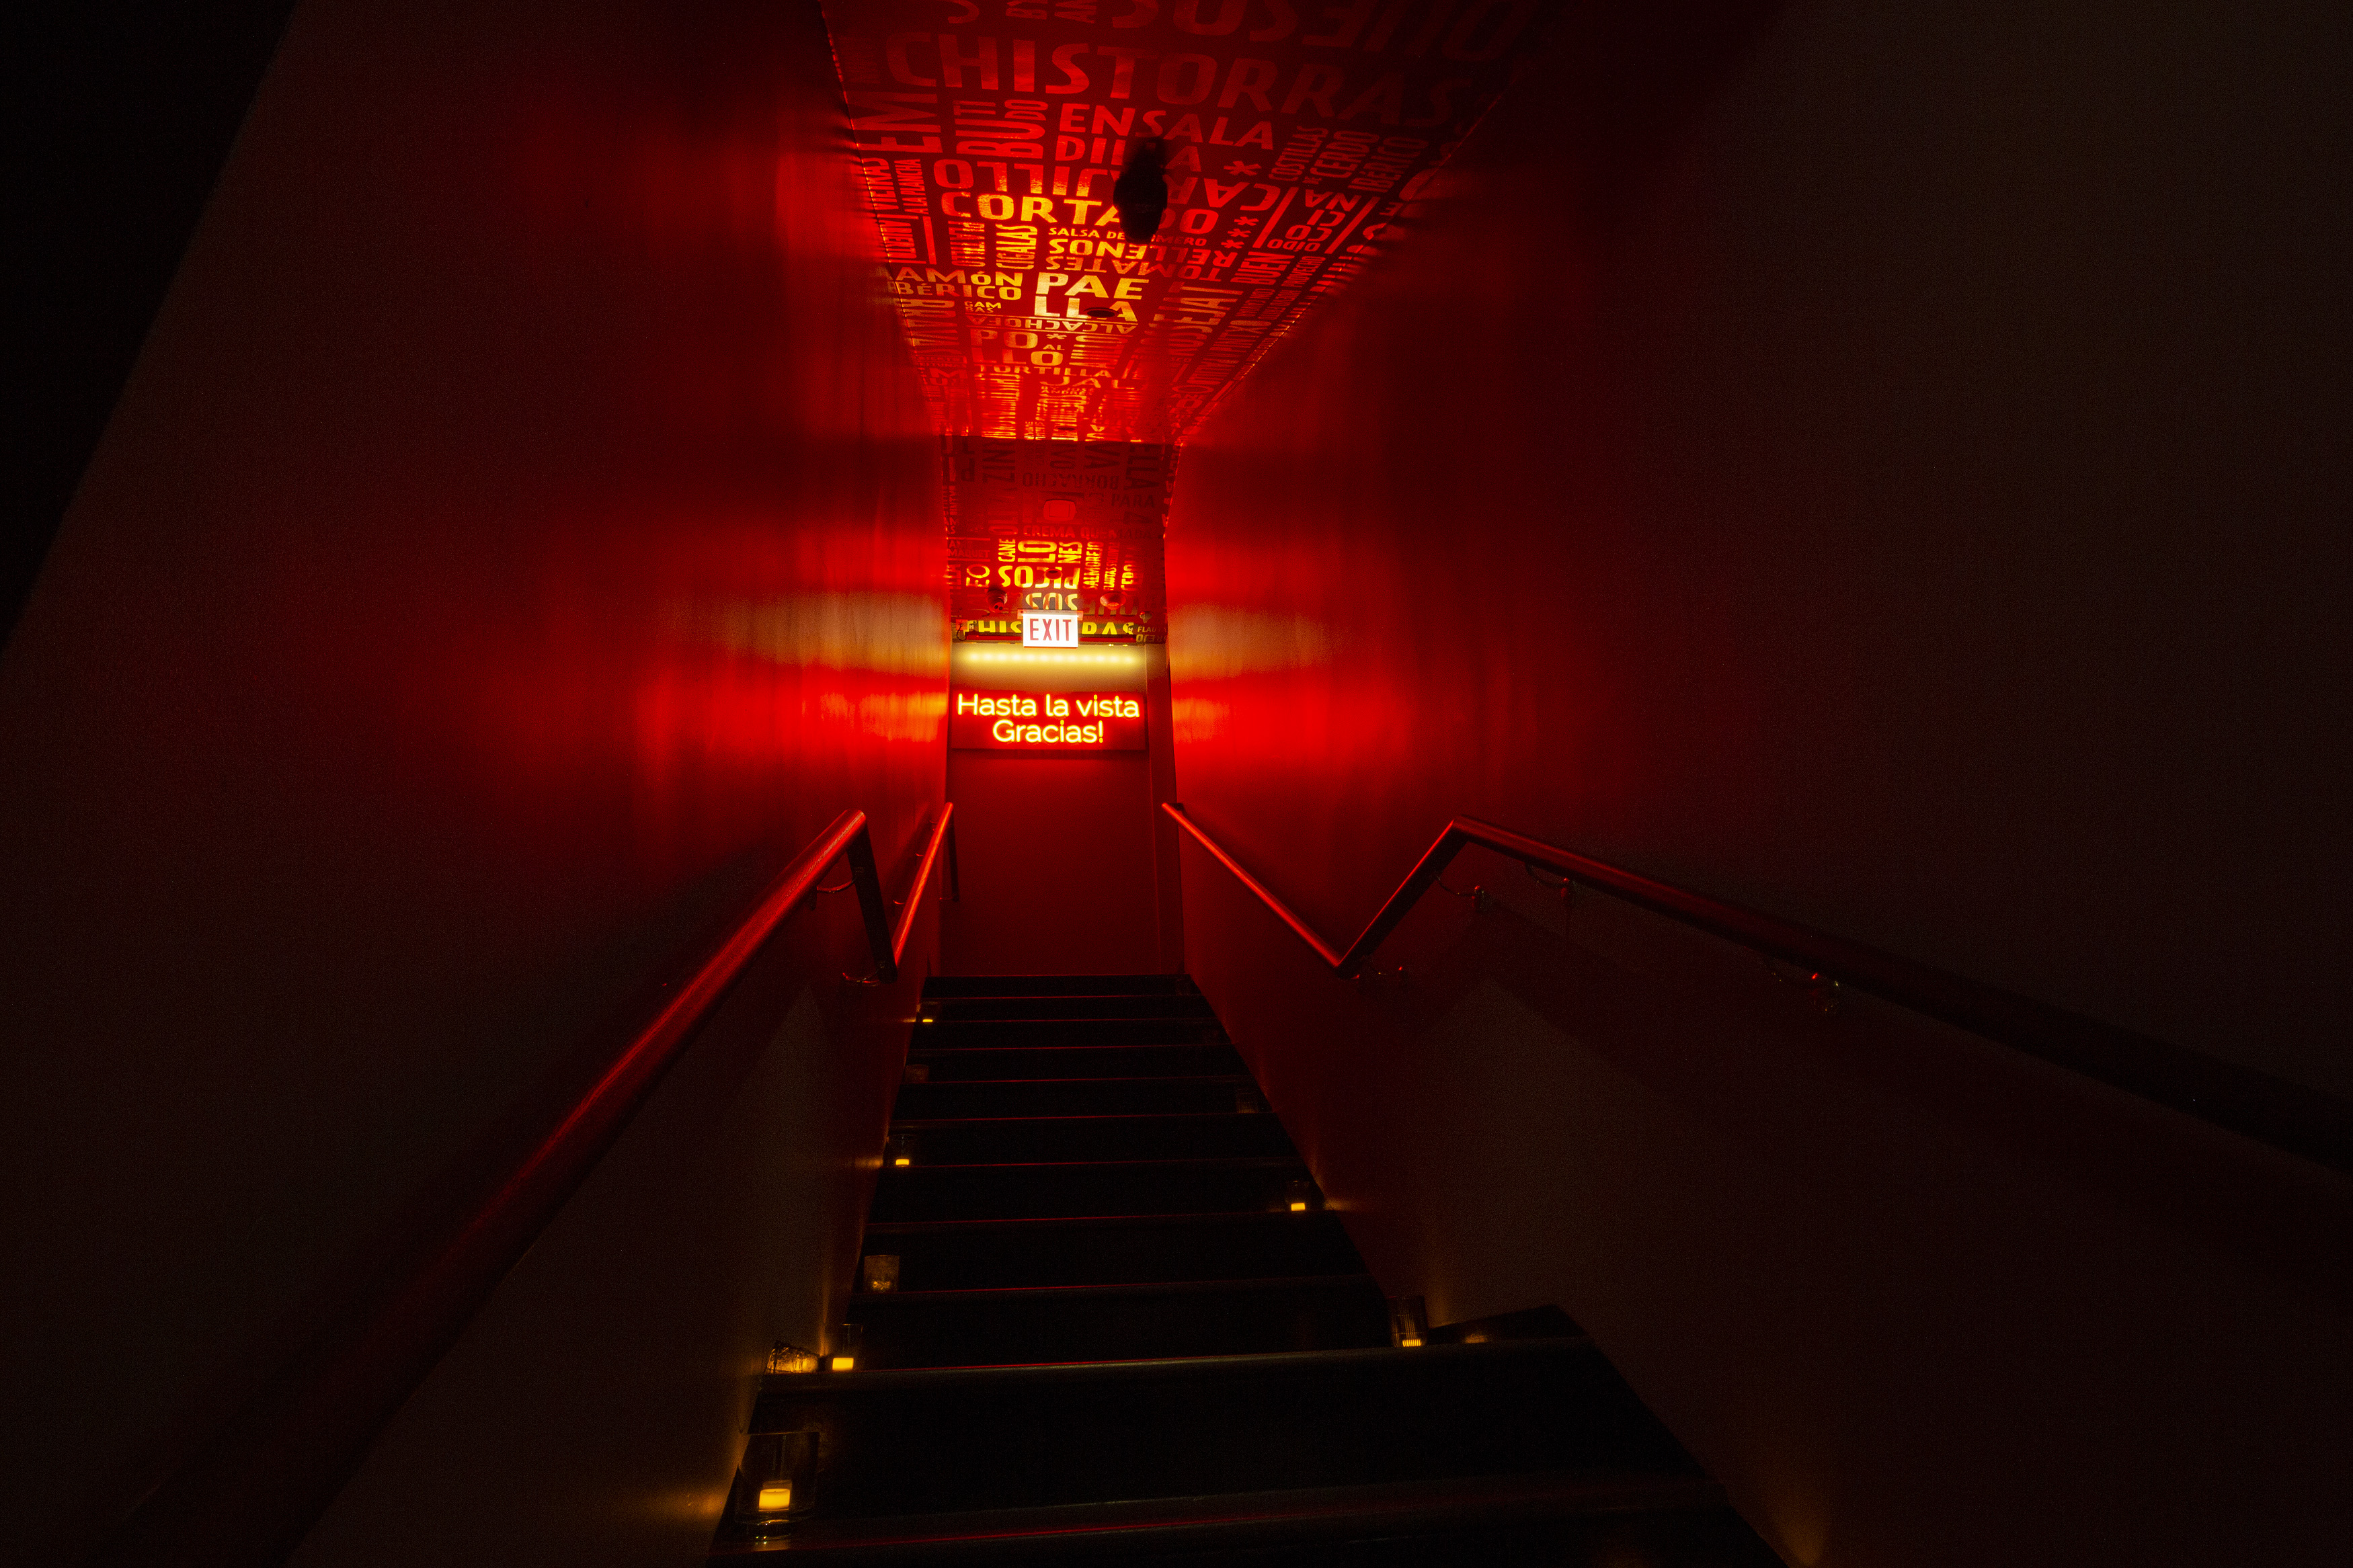 """A dark stairwell leads up to a glowing, red-lit door with a red neon sign that reads """"Hasta la vista. Gracias!"""""""